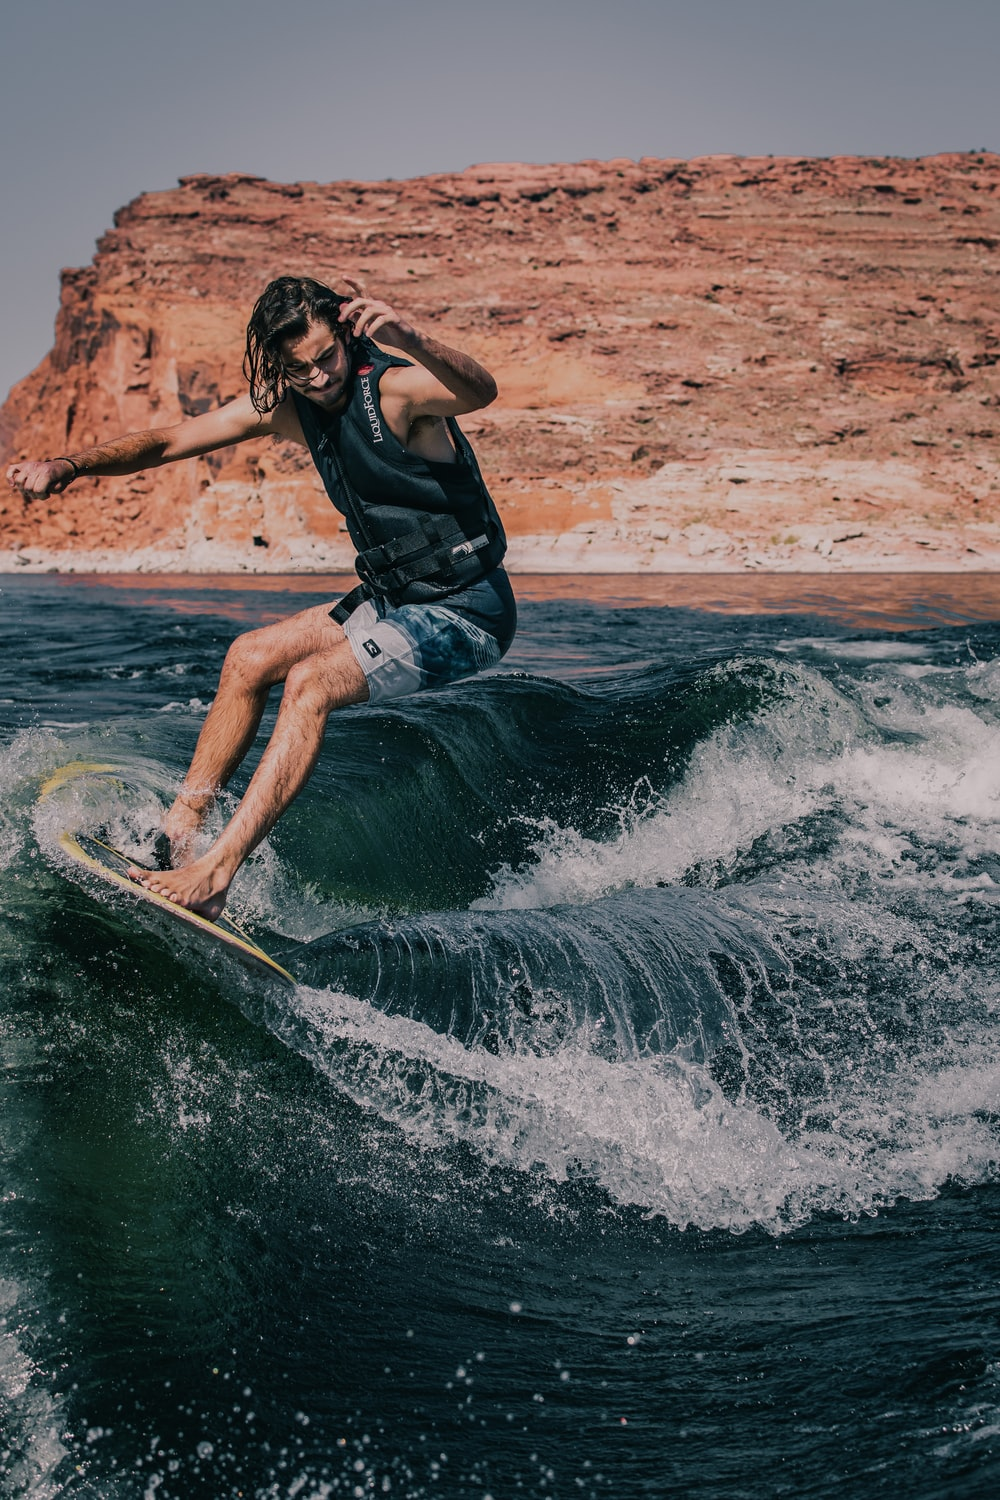 woman in black shirt and blue denim shorts surfing on water waves during daytime